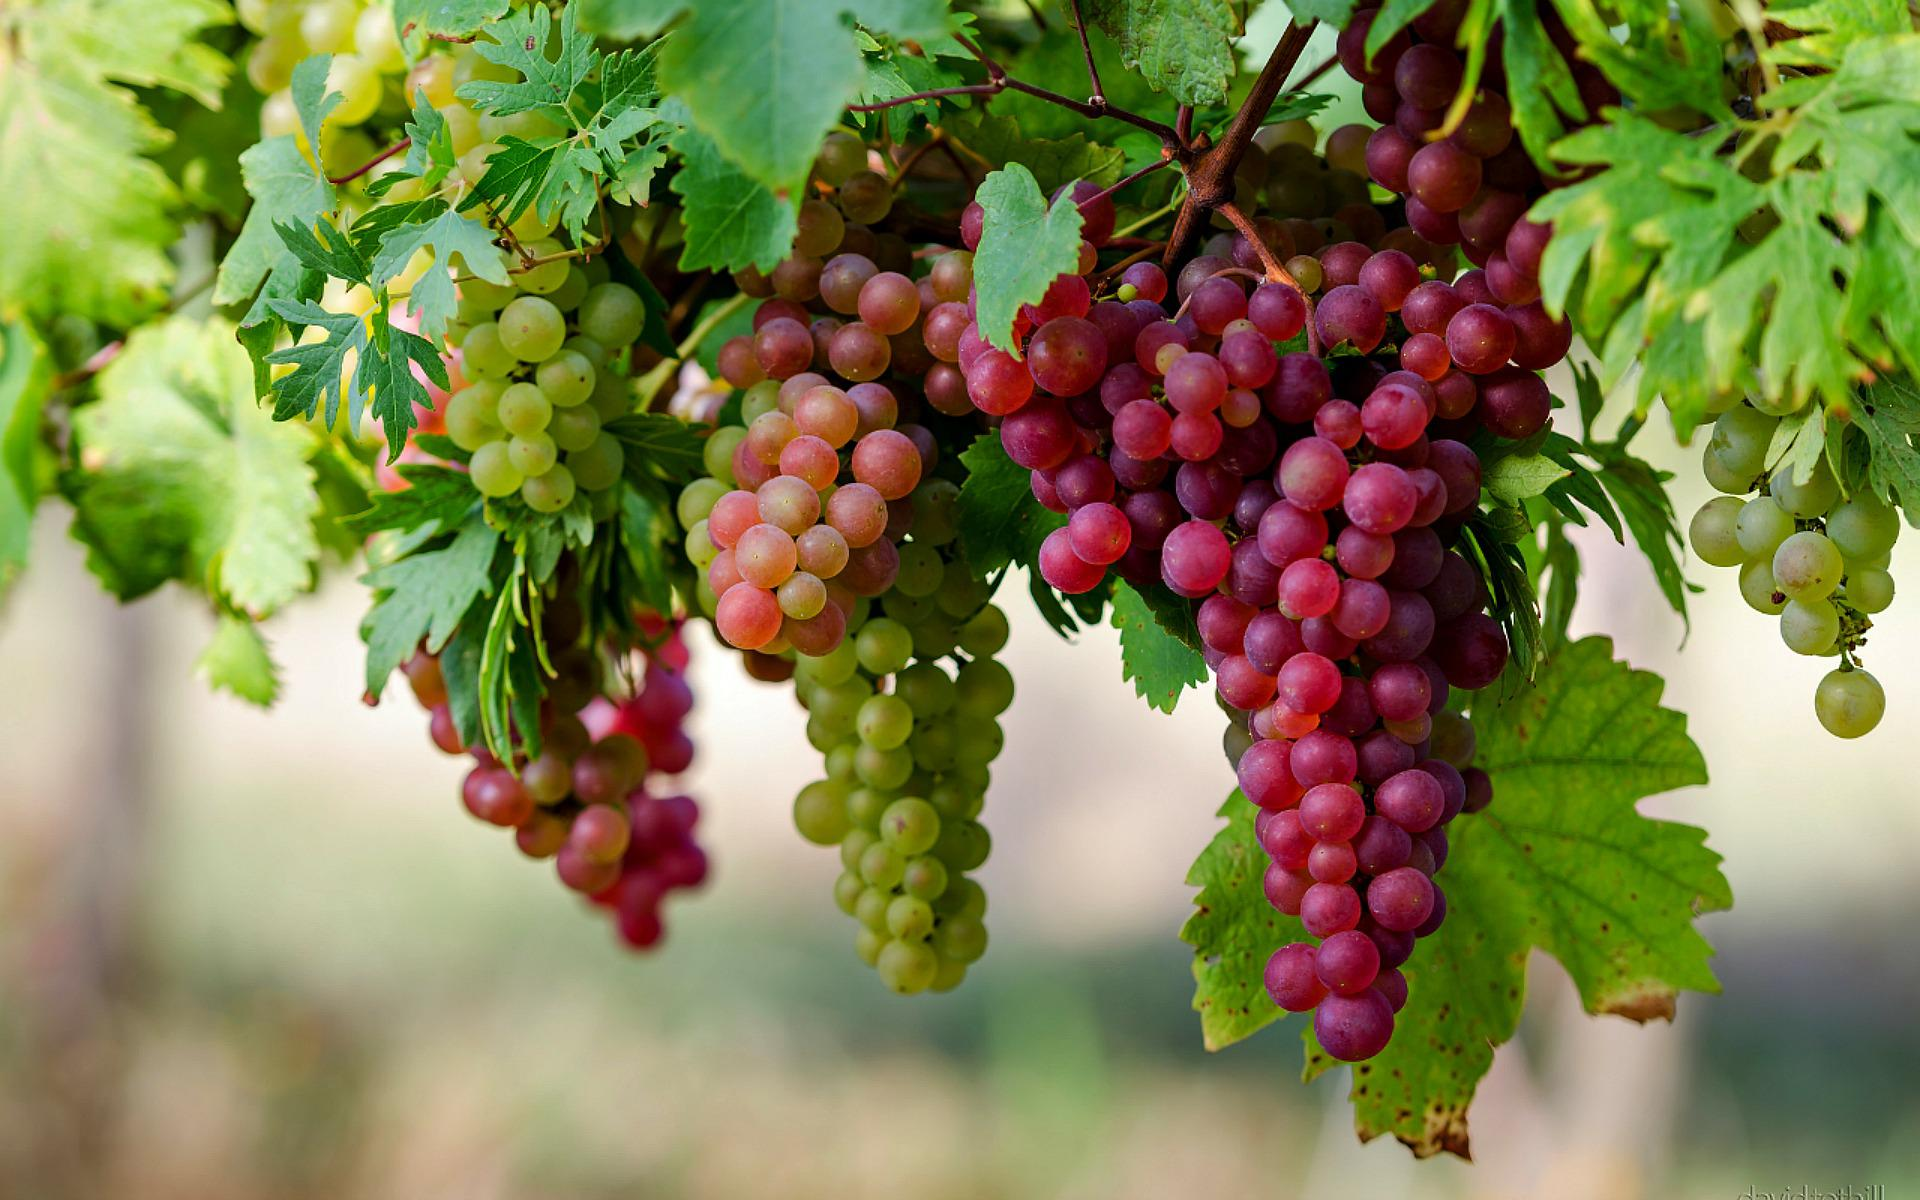 A juicy bunch of grapes